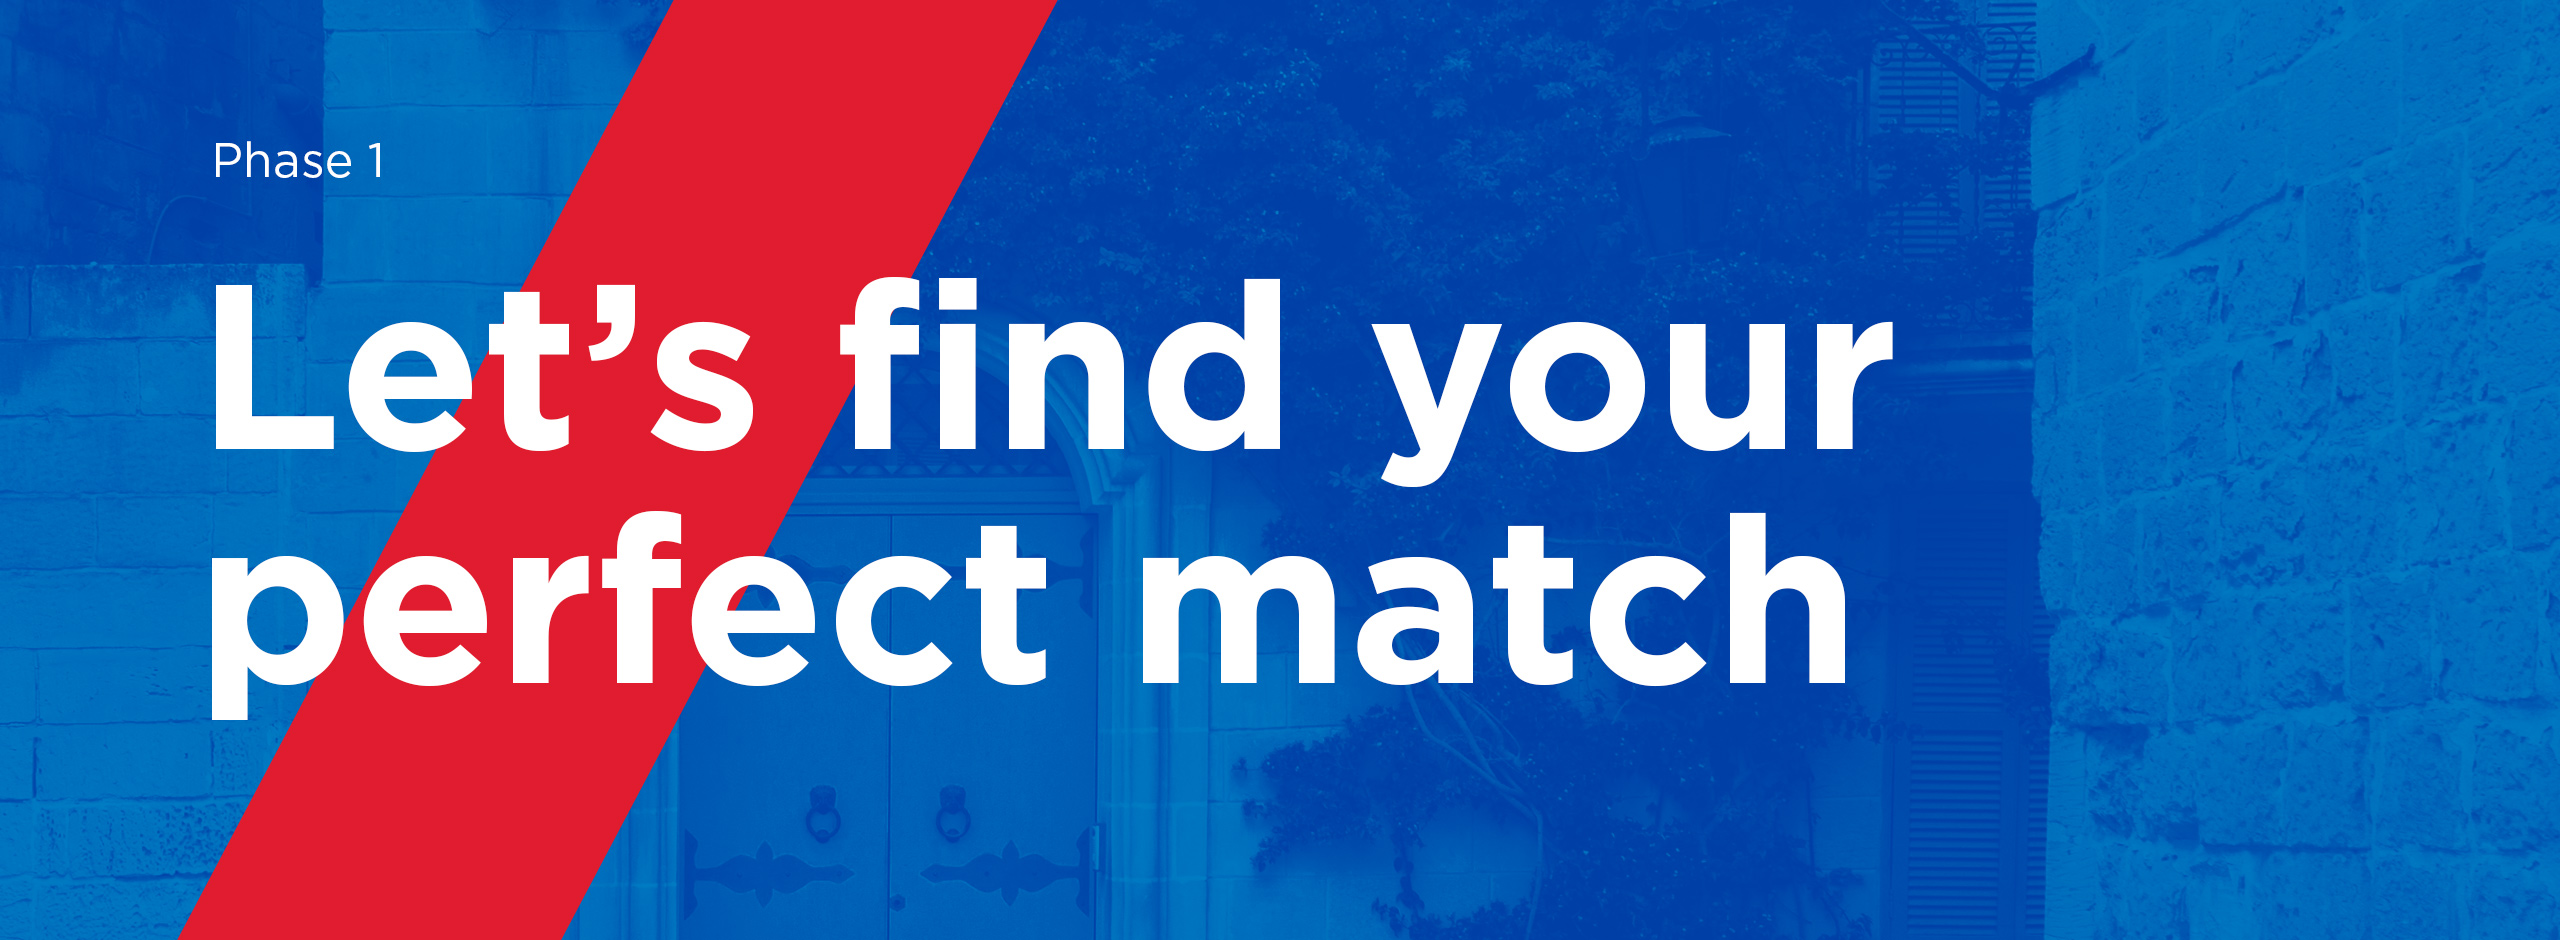 REMAX Let's find your perfect match